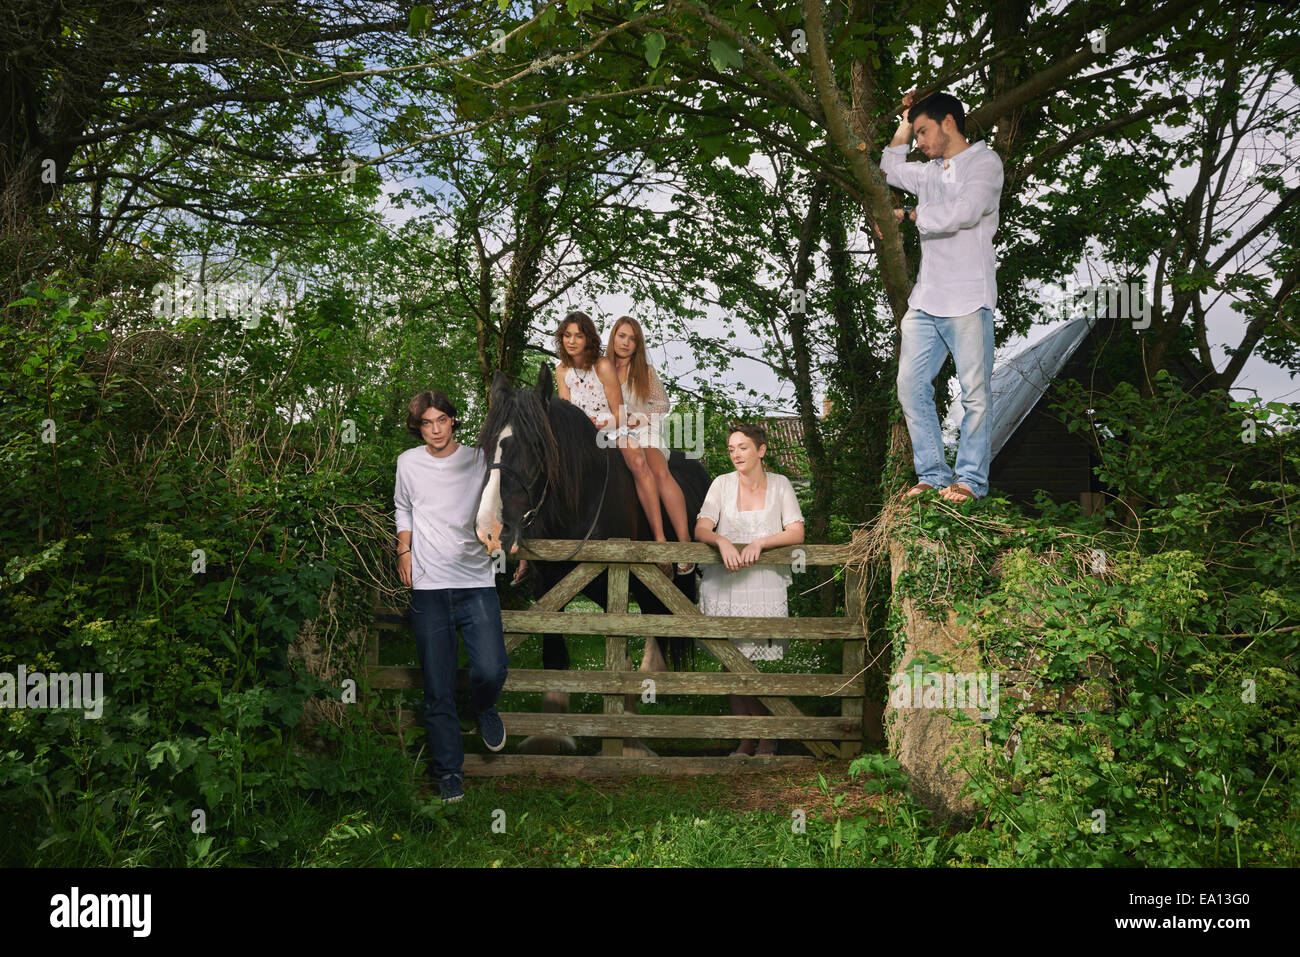 Portrait of five young adults and horse at forest gate - Stock Image